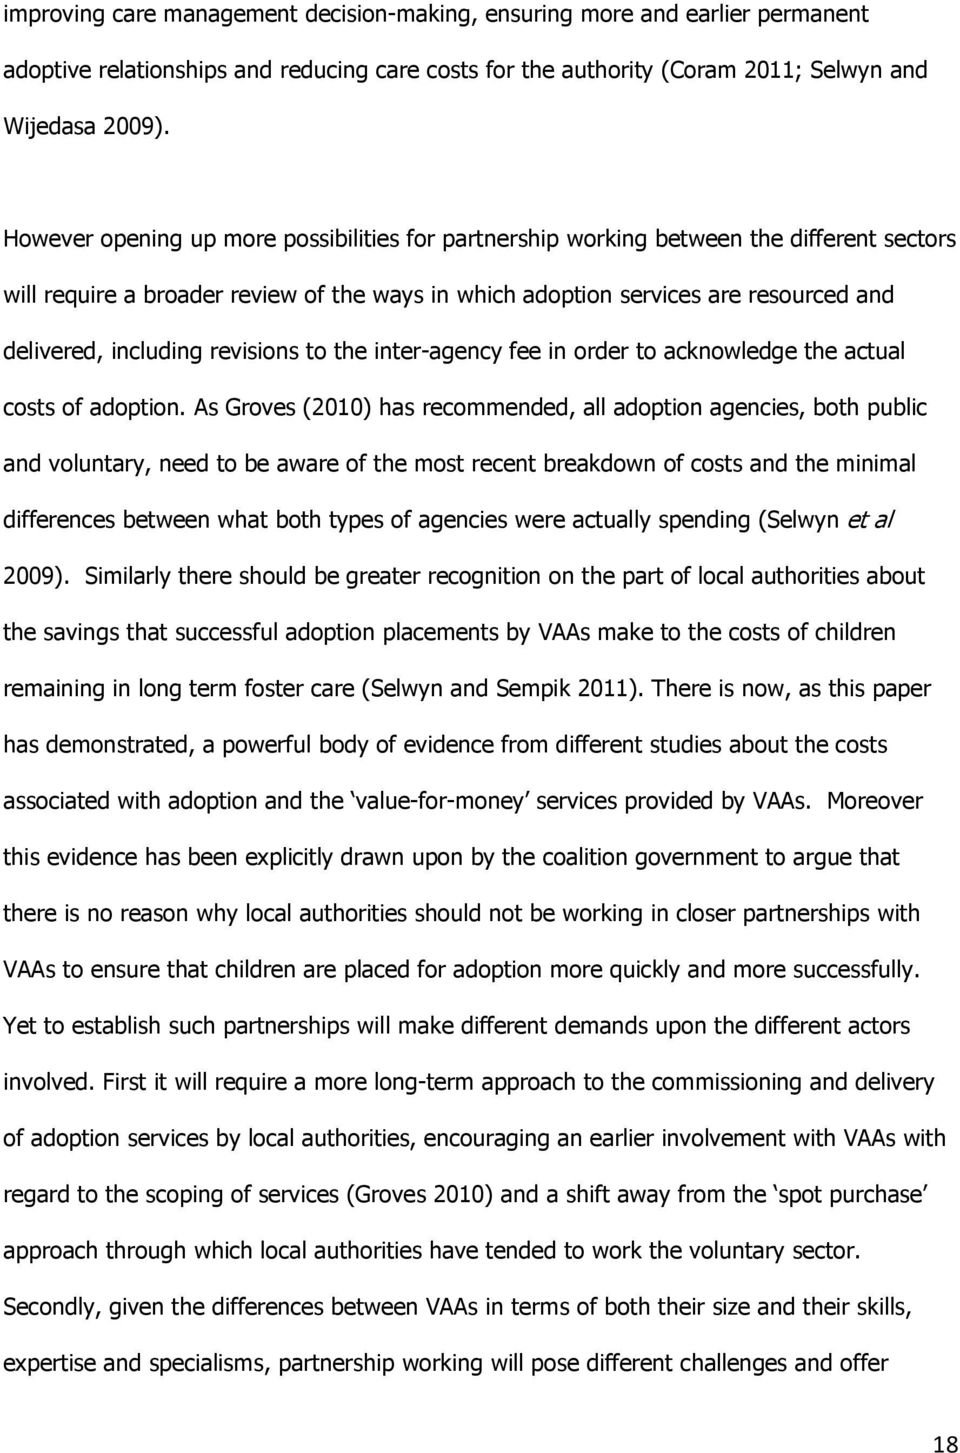 revisions to the inter-agency fee in order to acknowledge the actual costs of adoption.